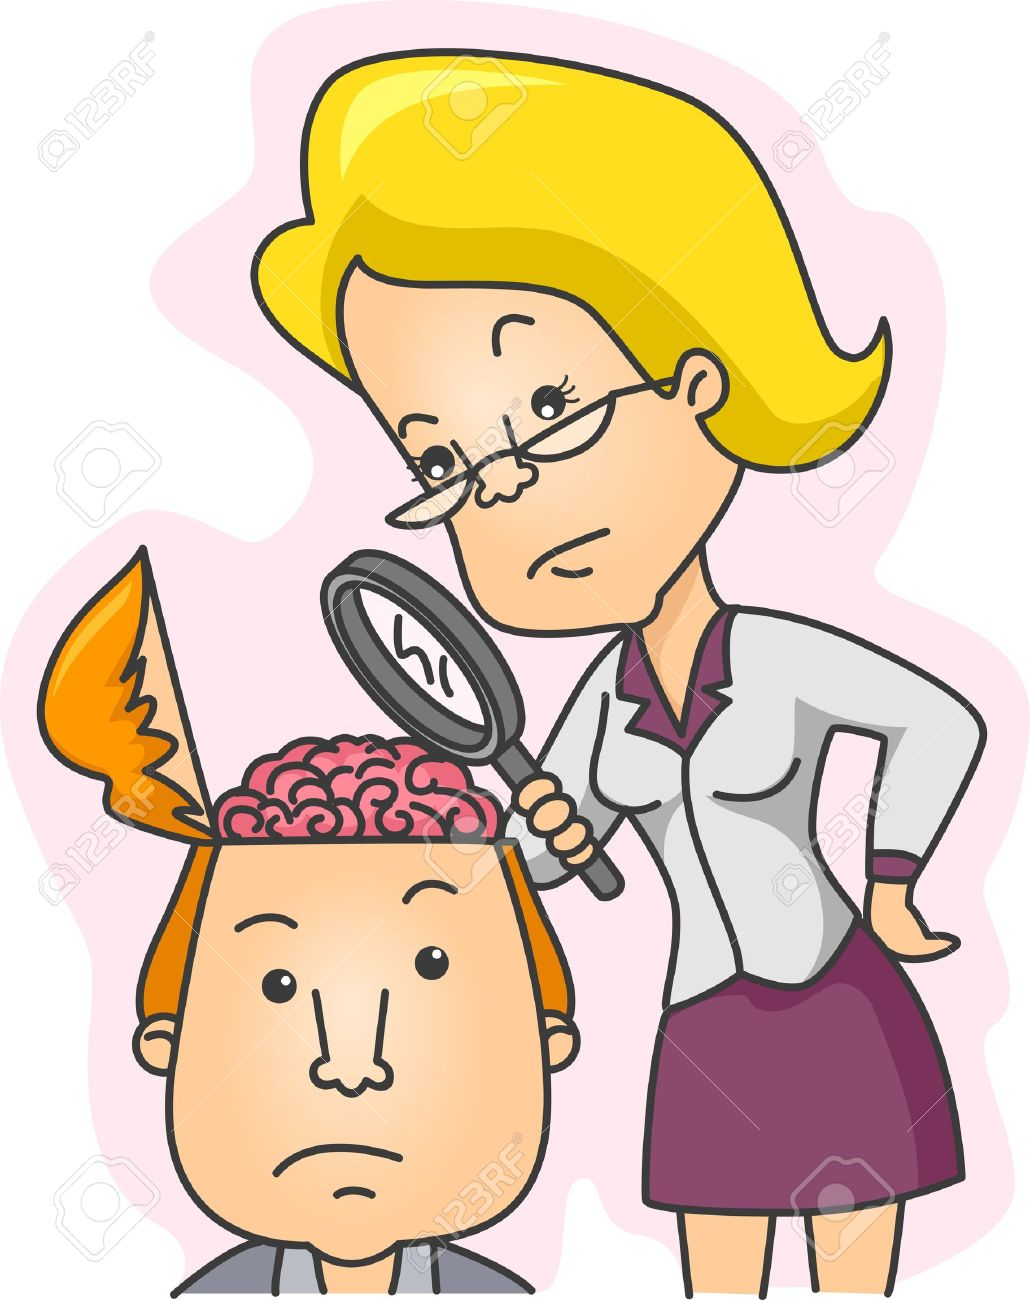 Illustration of a Woman Examining the Contents of a Man's Head Stock Illustration - 8906455